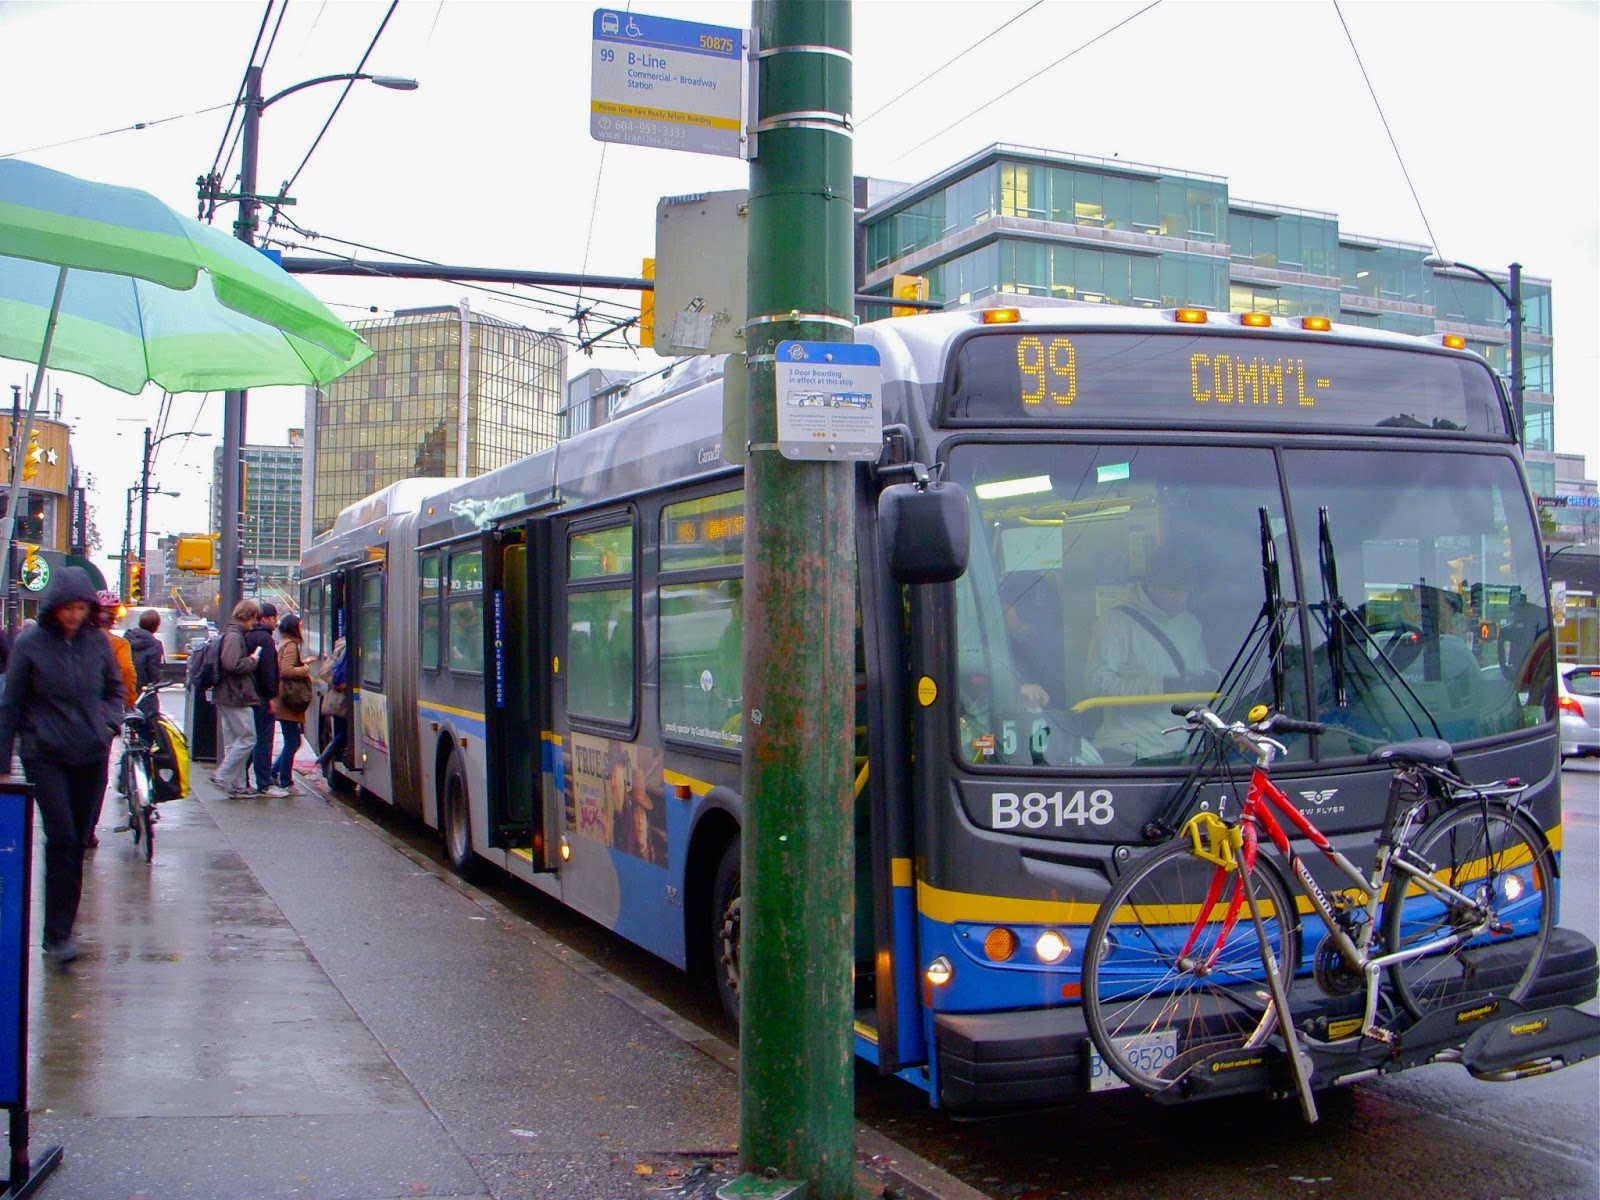 A 99 B Line Stop Select Image To Enlarge Source Wikimedia Commons